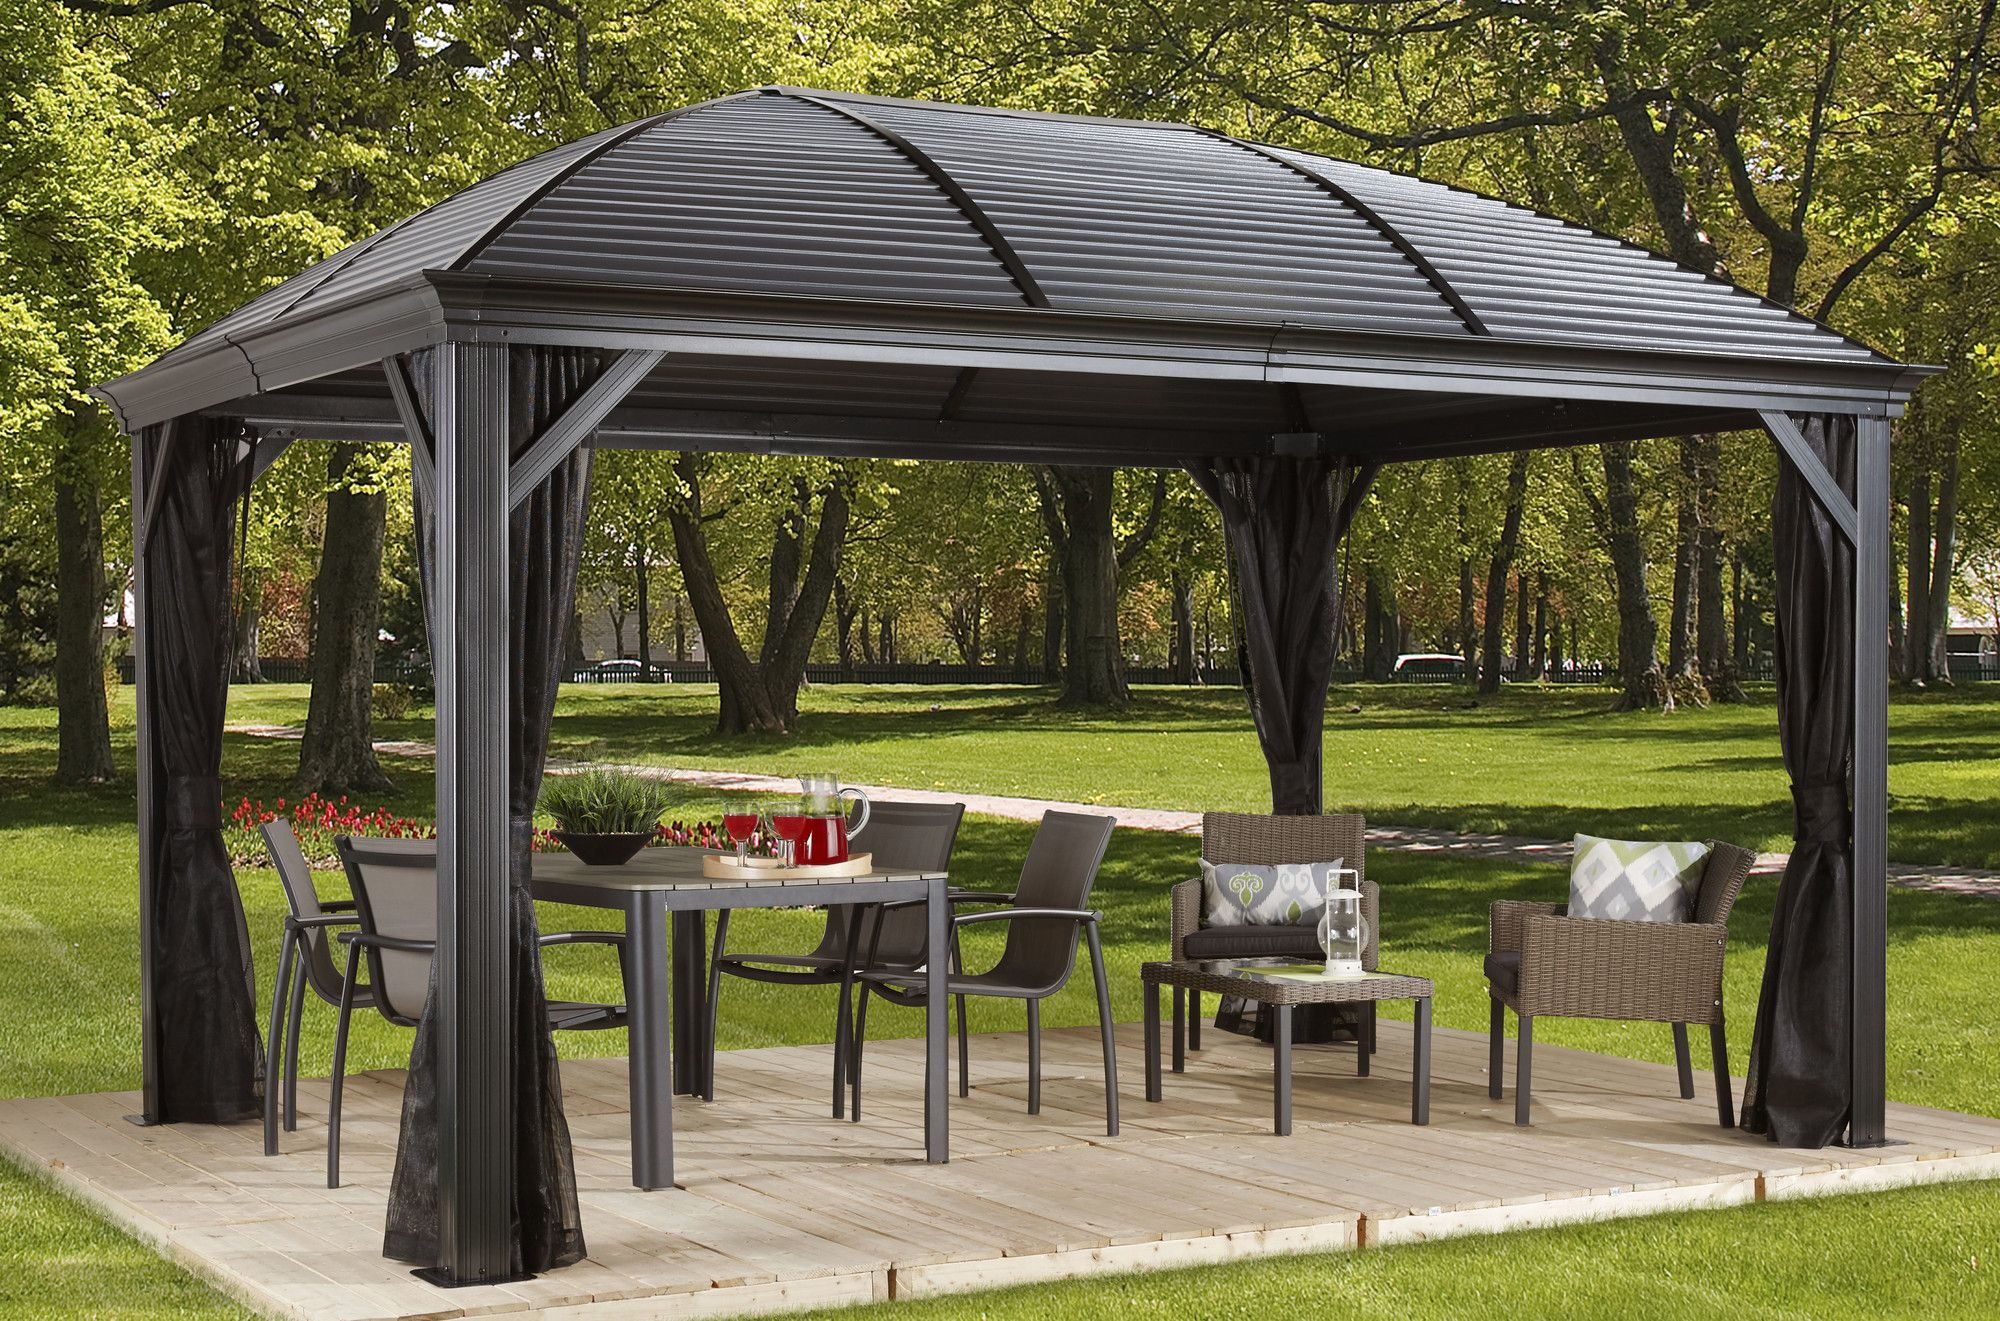 Moreno 10 Ft W X 12 Ft D Metal Permanent Gazebo Outdoor Pergola Modern Gazebo Patio Gazebo